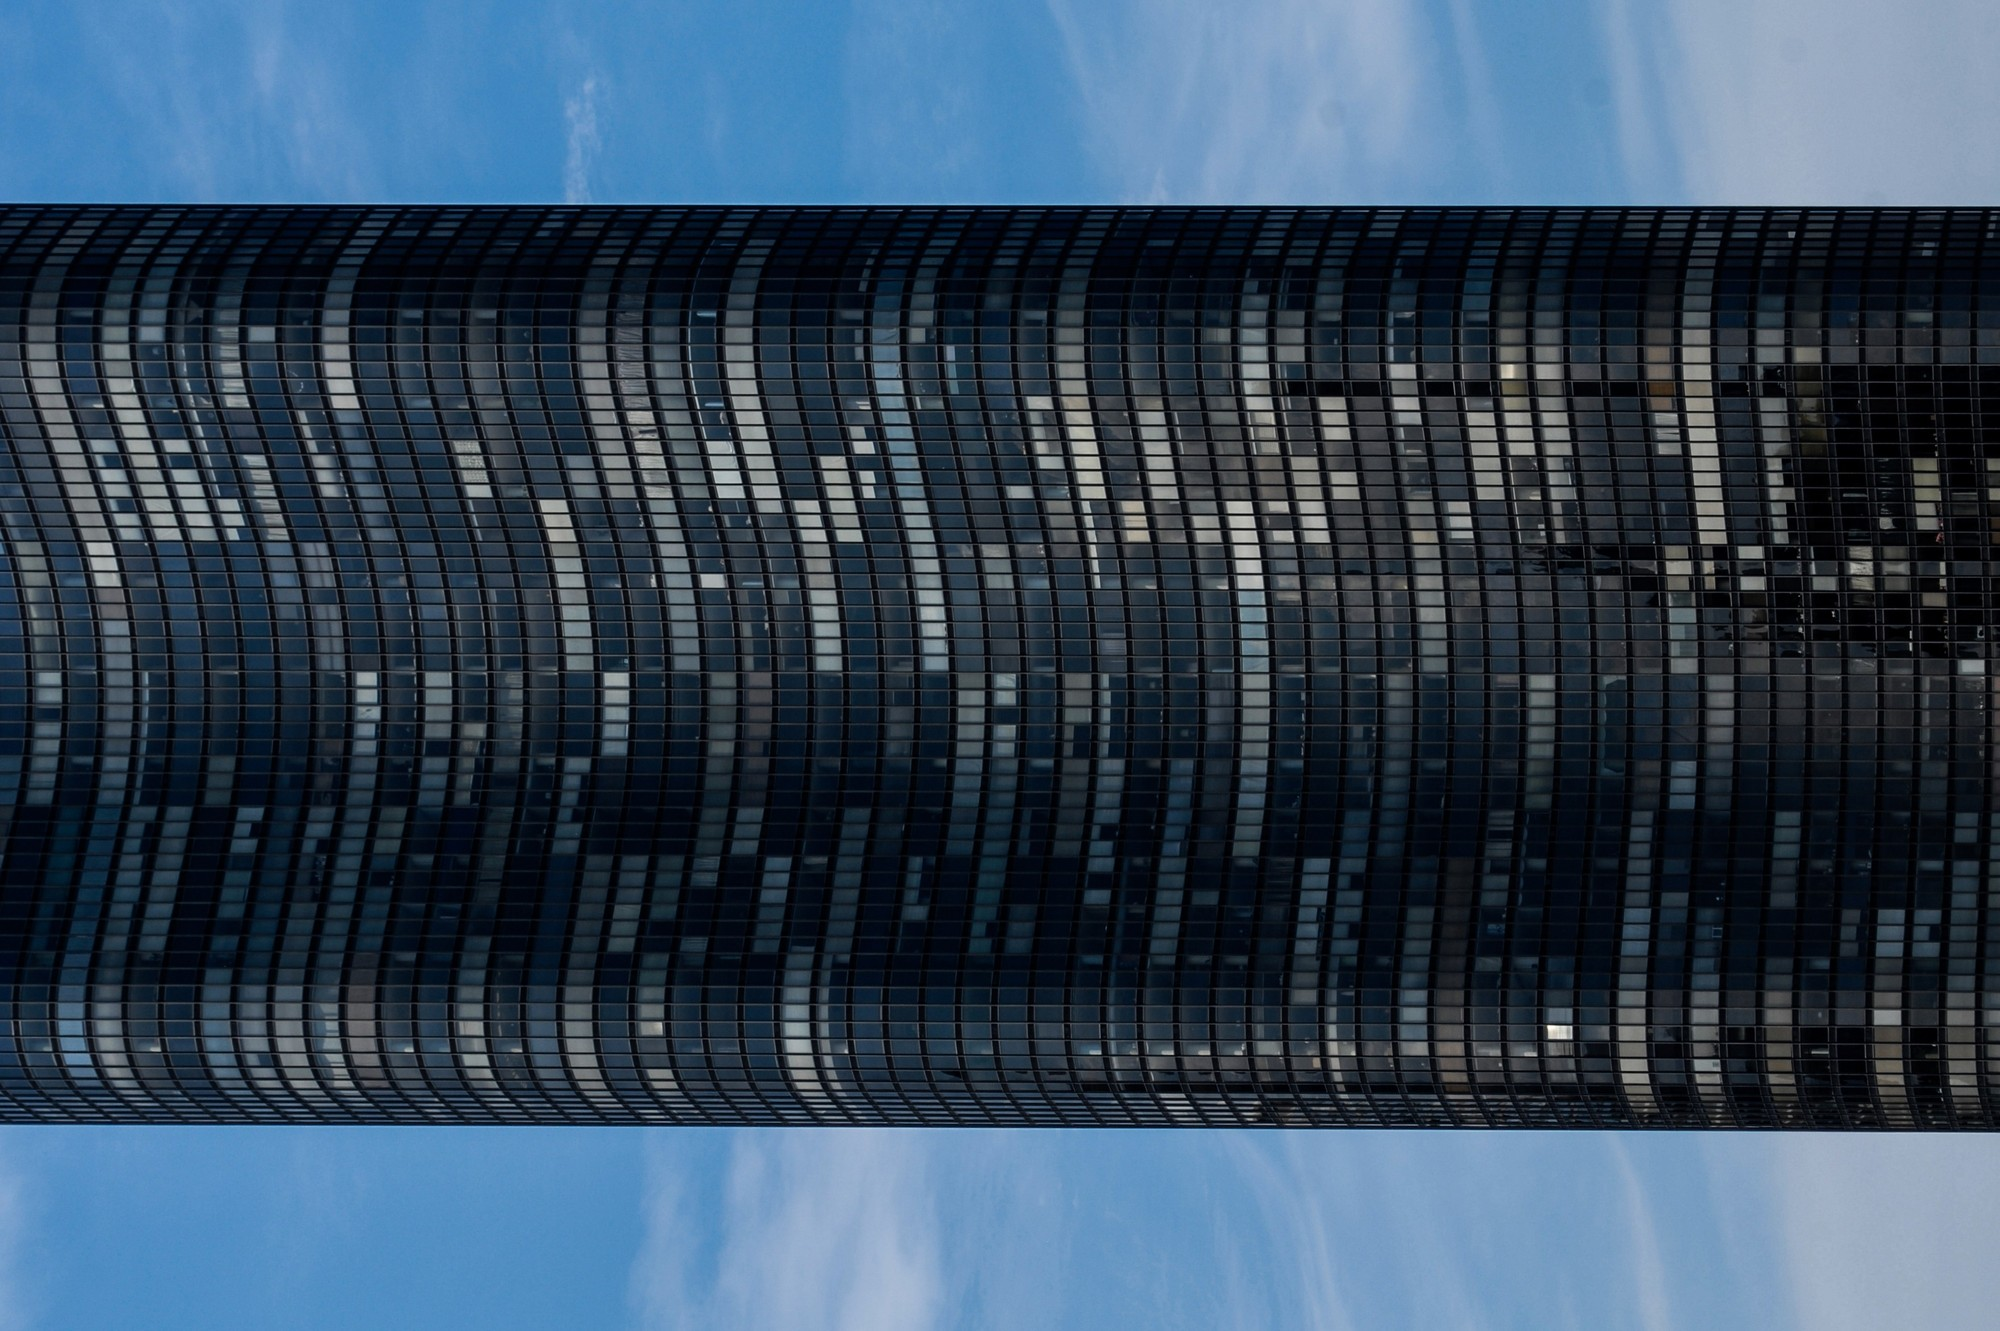 Matrix Building. Image © Nikola Olic